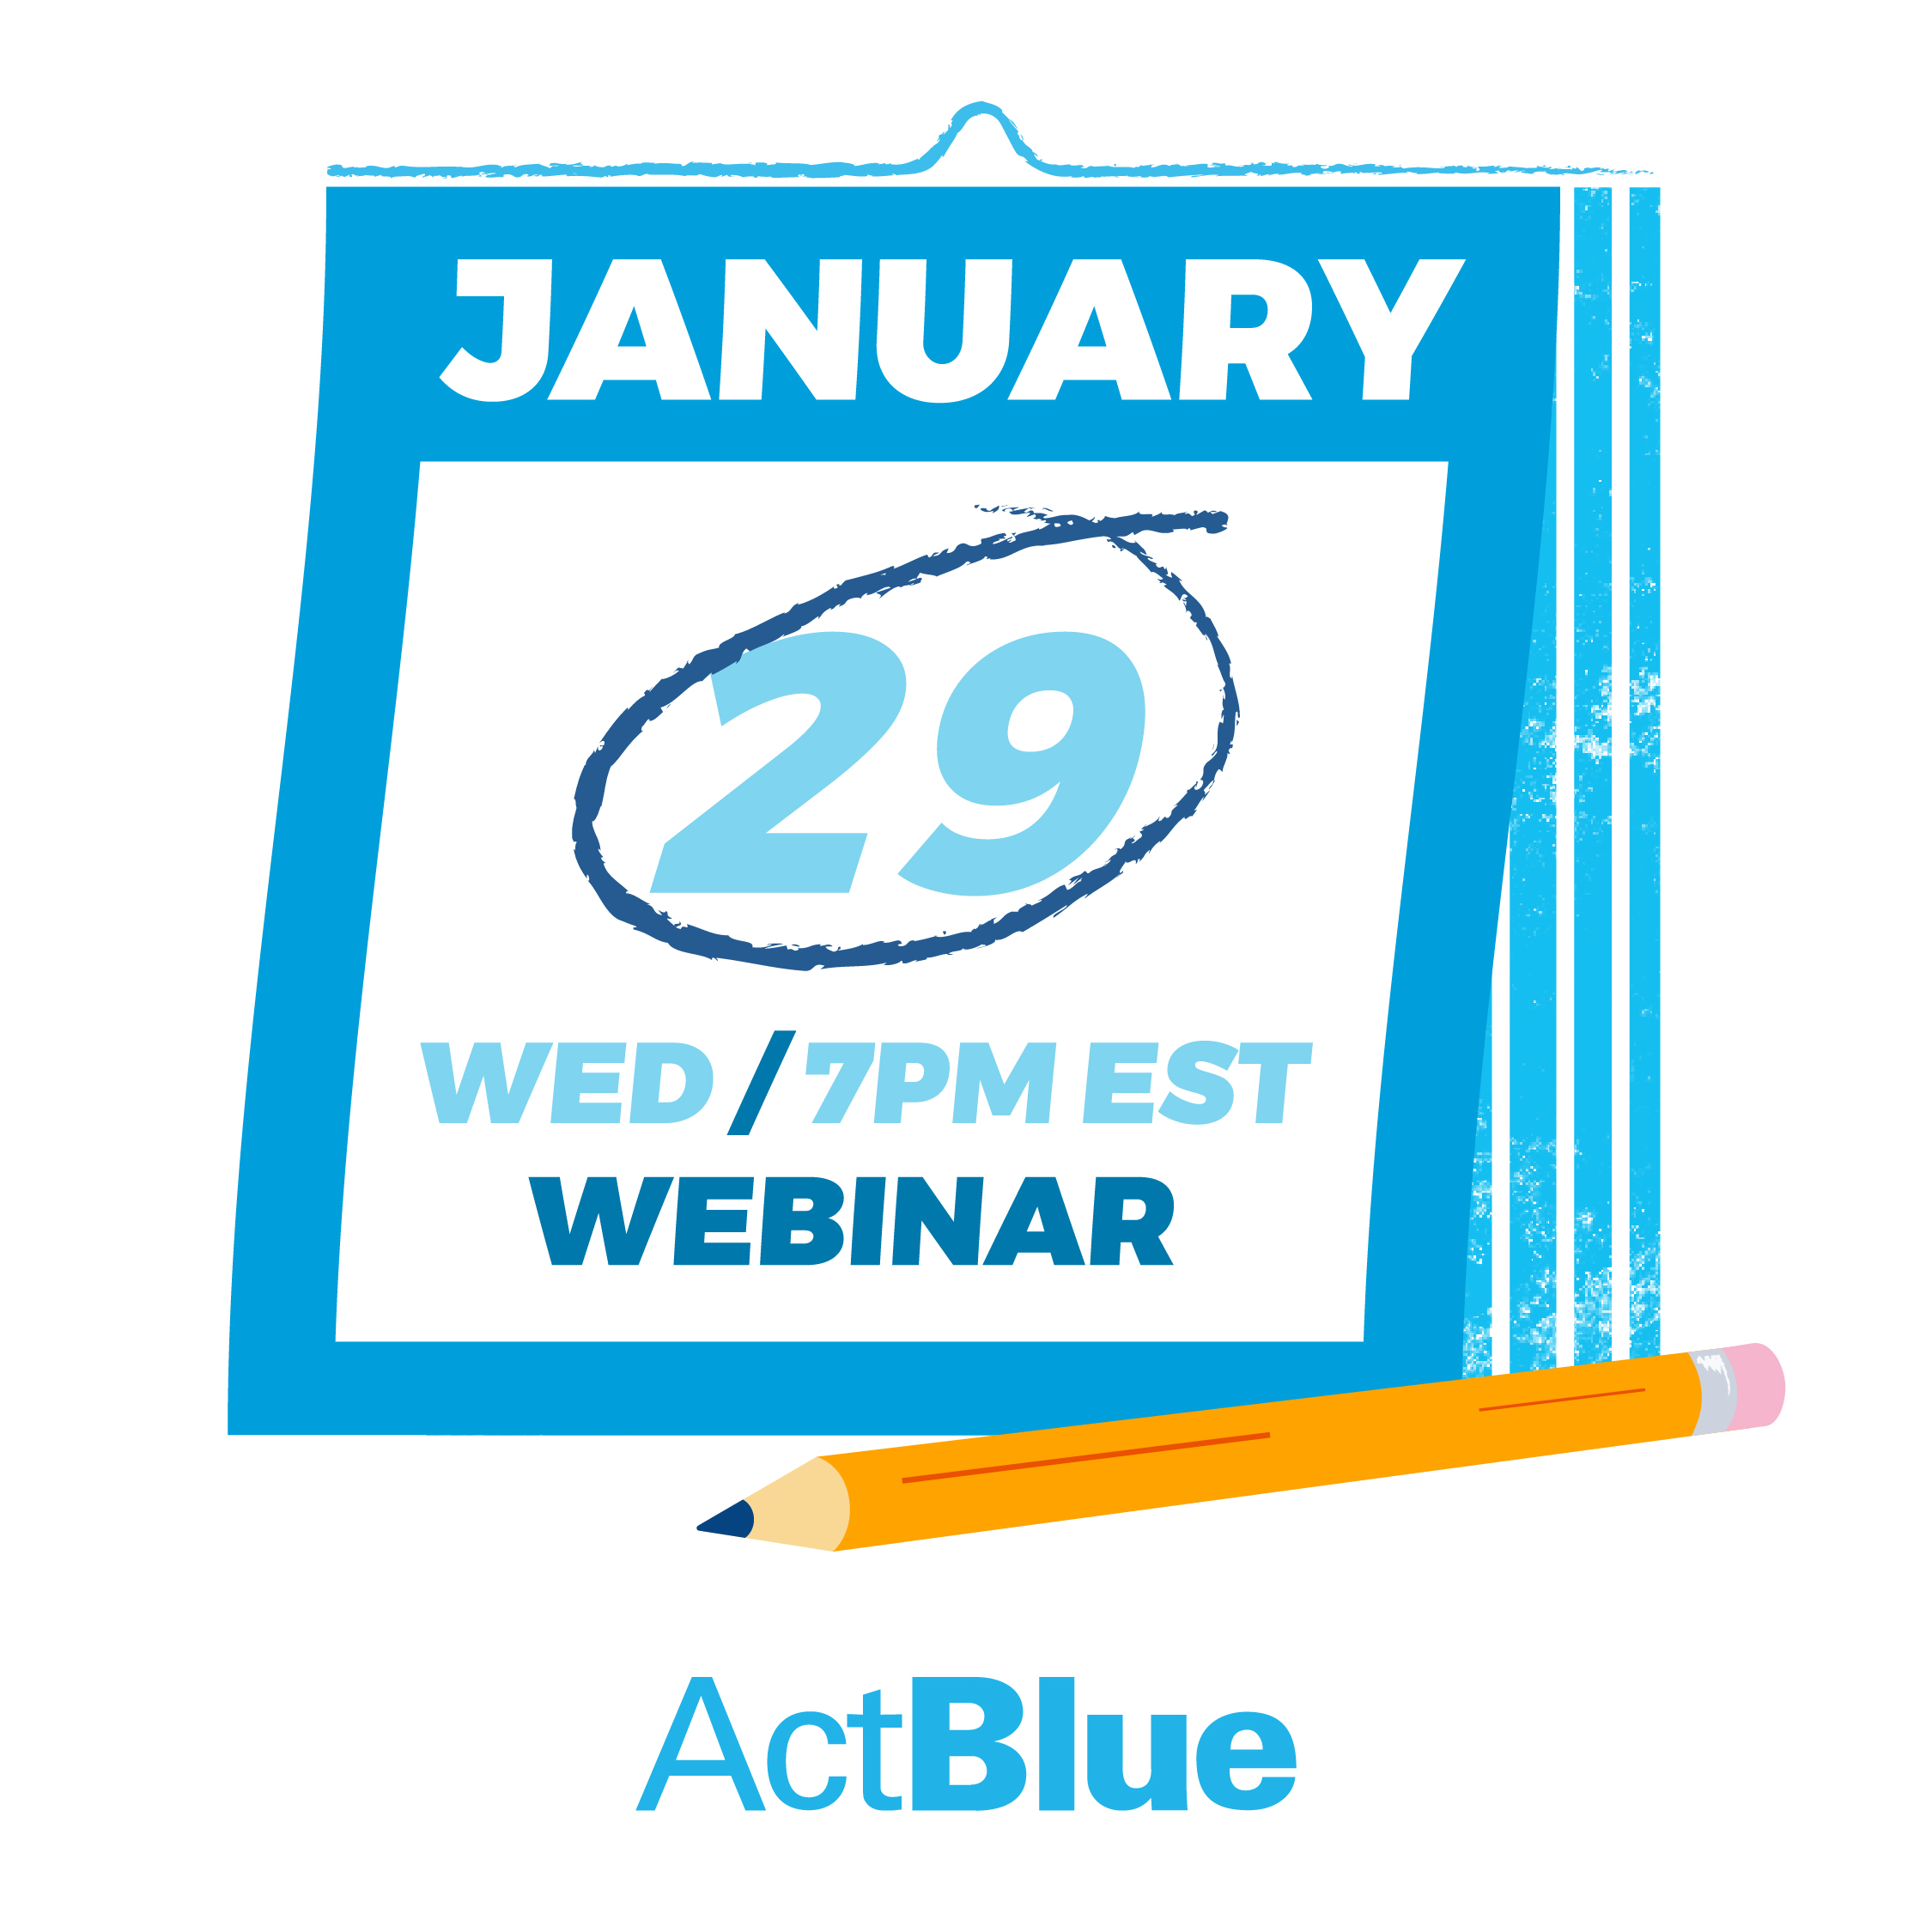 ActBlue's webinar begins on January 29, 7pm EST